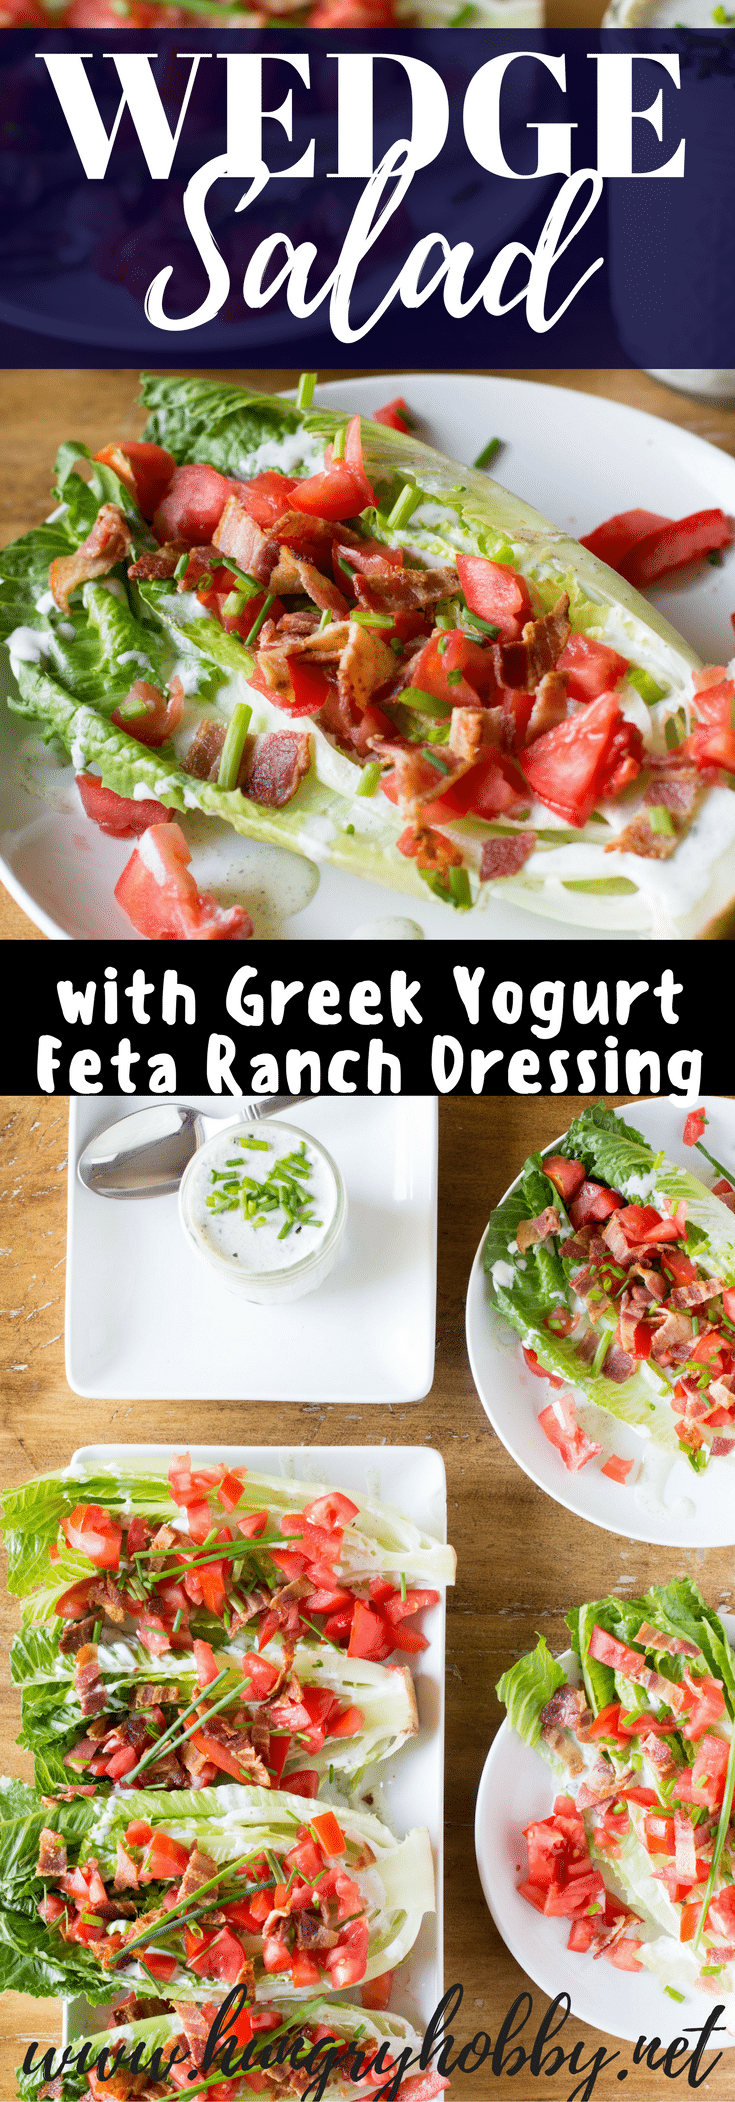 My twist on the traditional wedge salad uses romaine hearts and Greek yogurt feta ranch for a slightly healthier tailgating win!